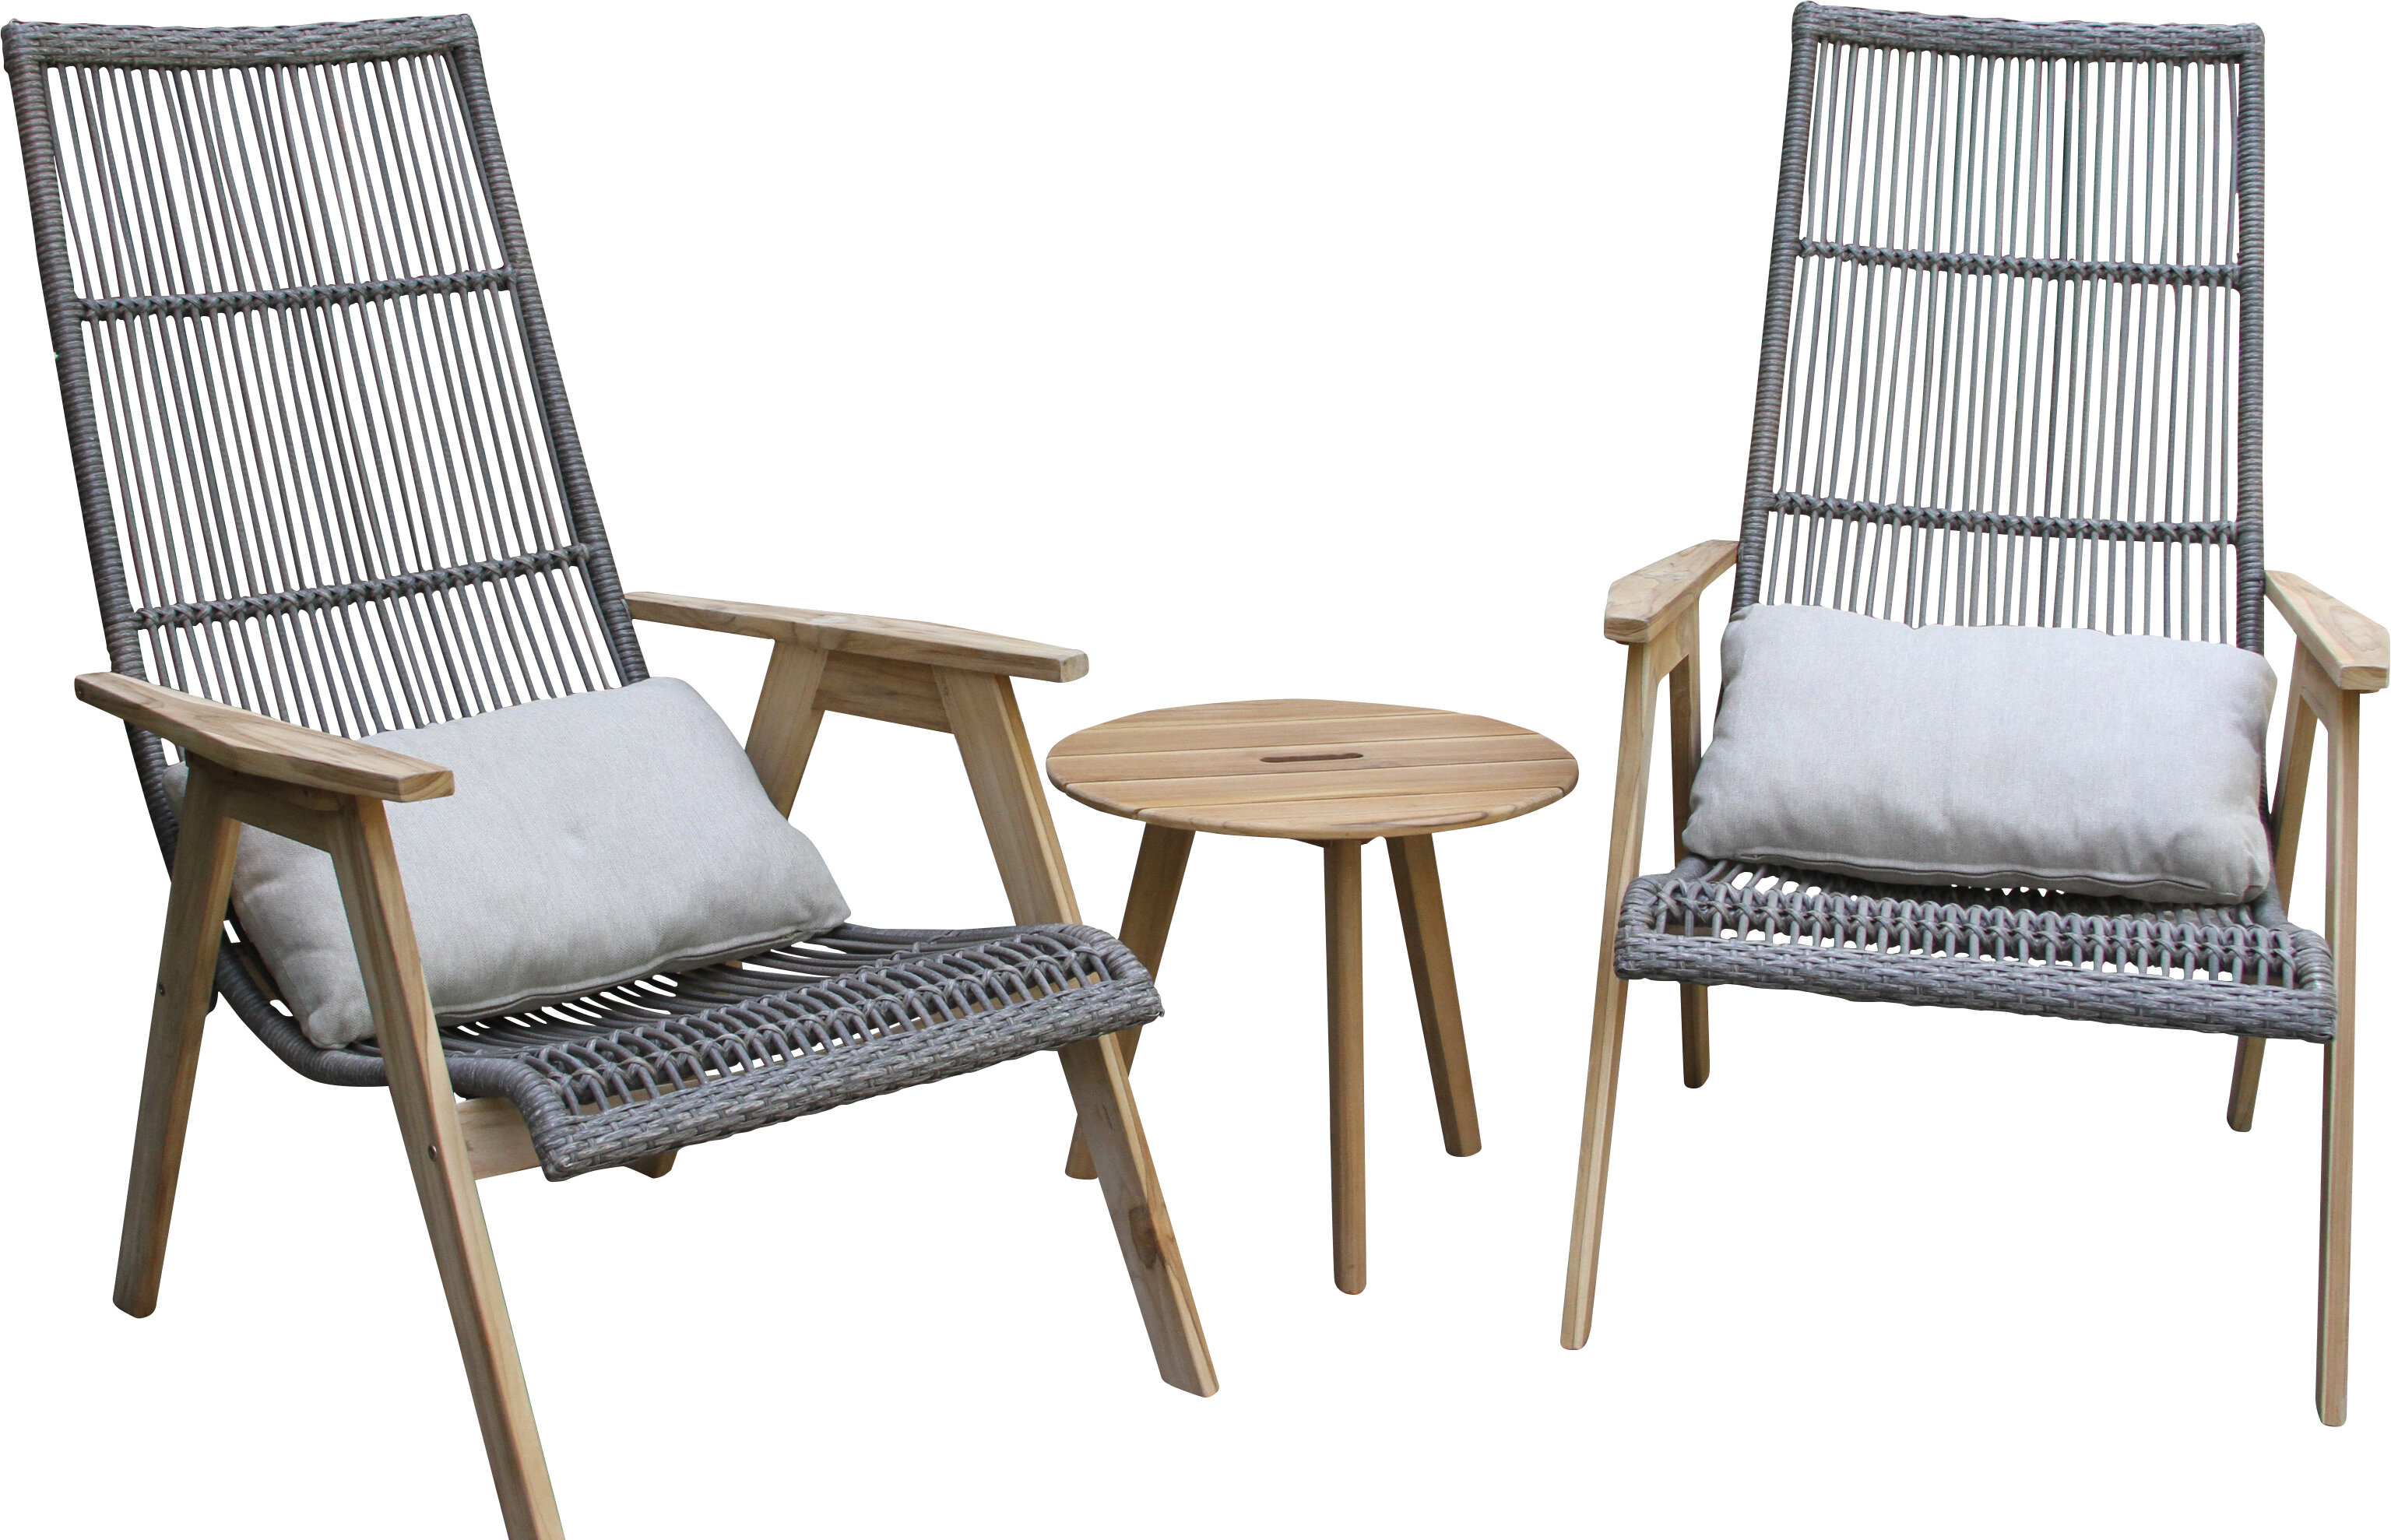 largent teak patio chair with cushions reviews allmodern rh allmodern com teak wood patio chairs teak patio chairs discount